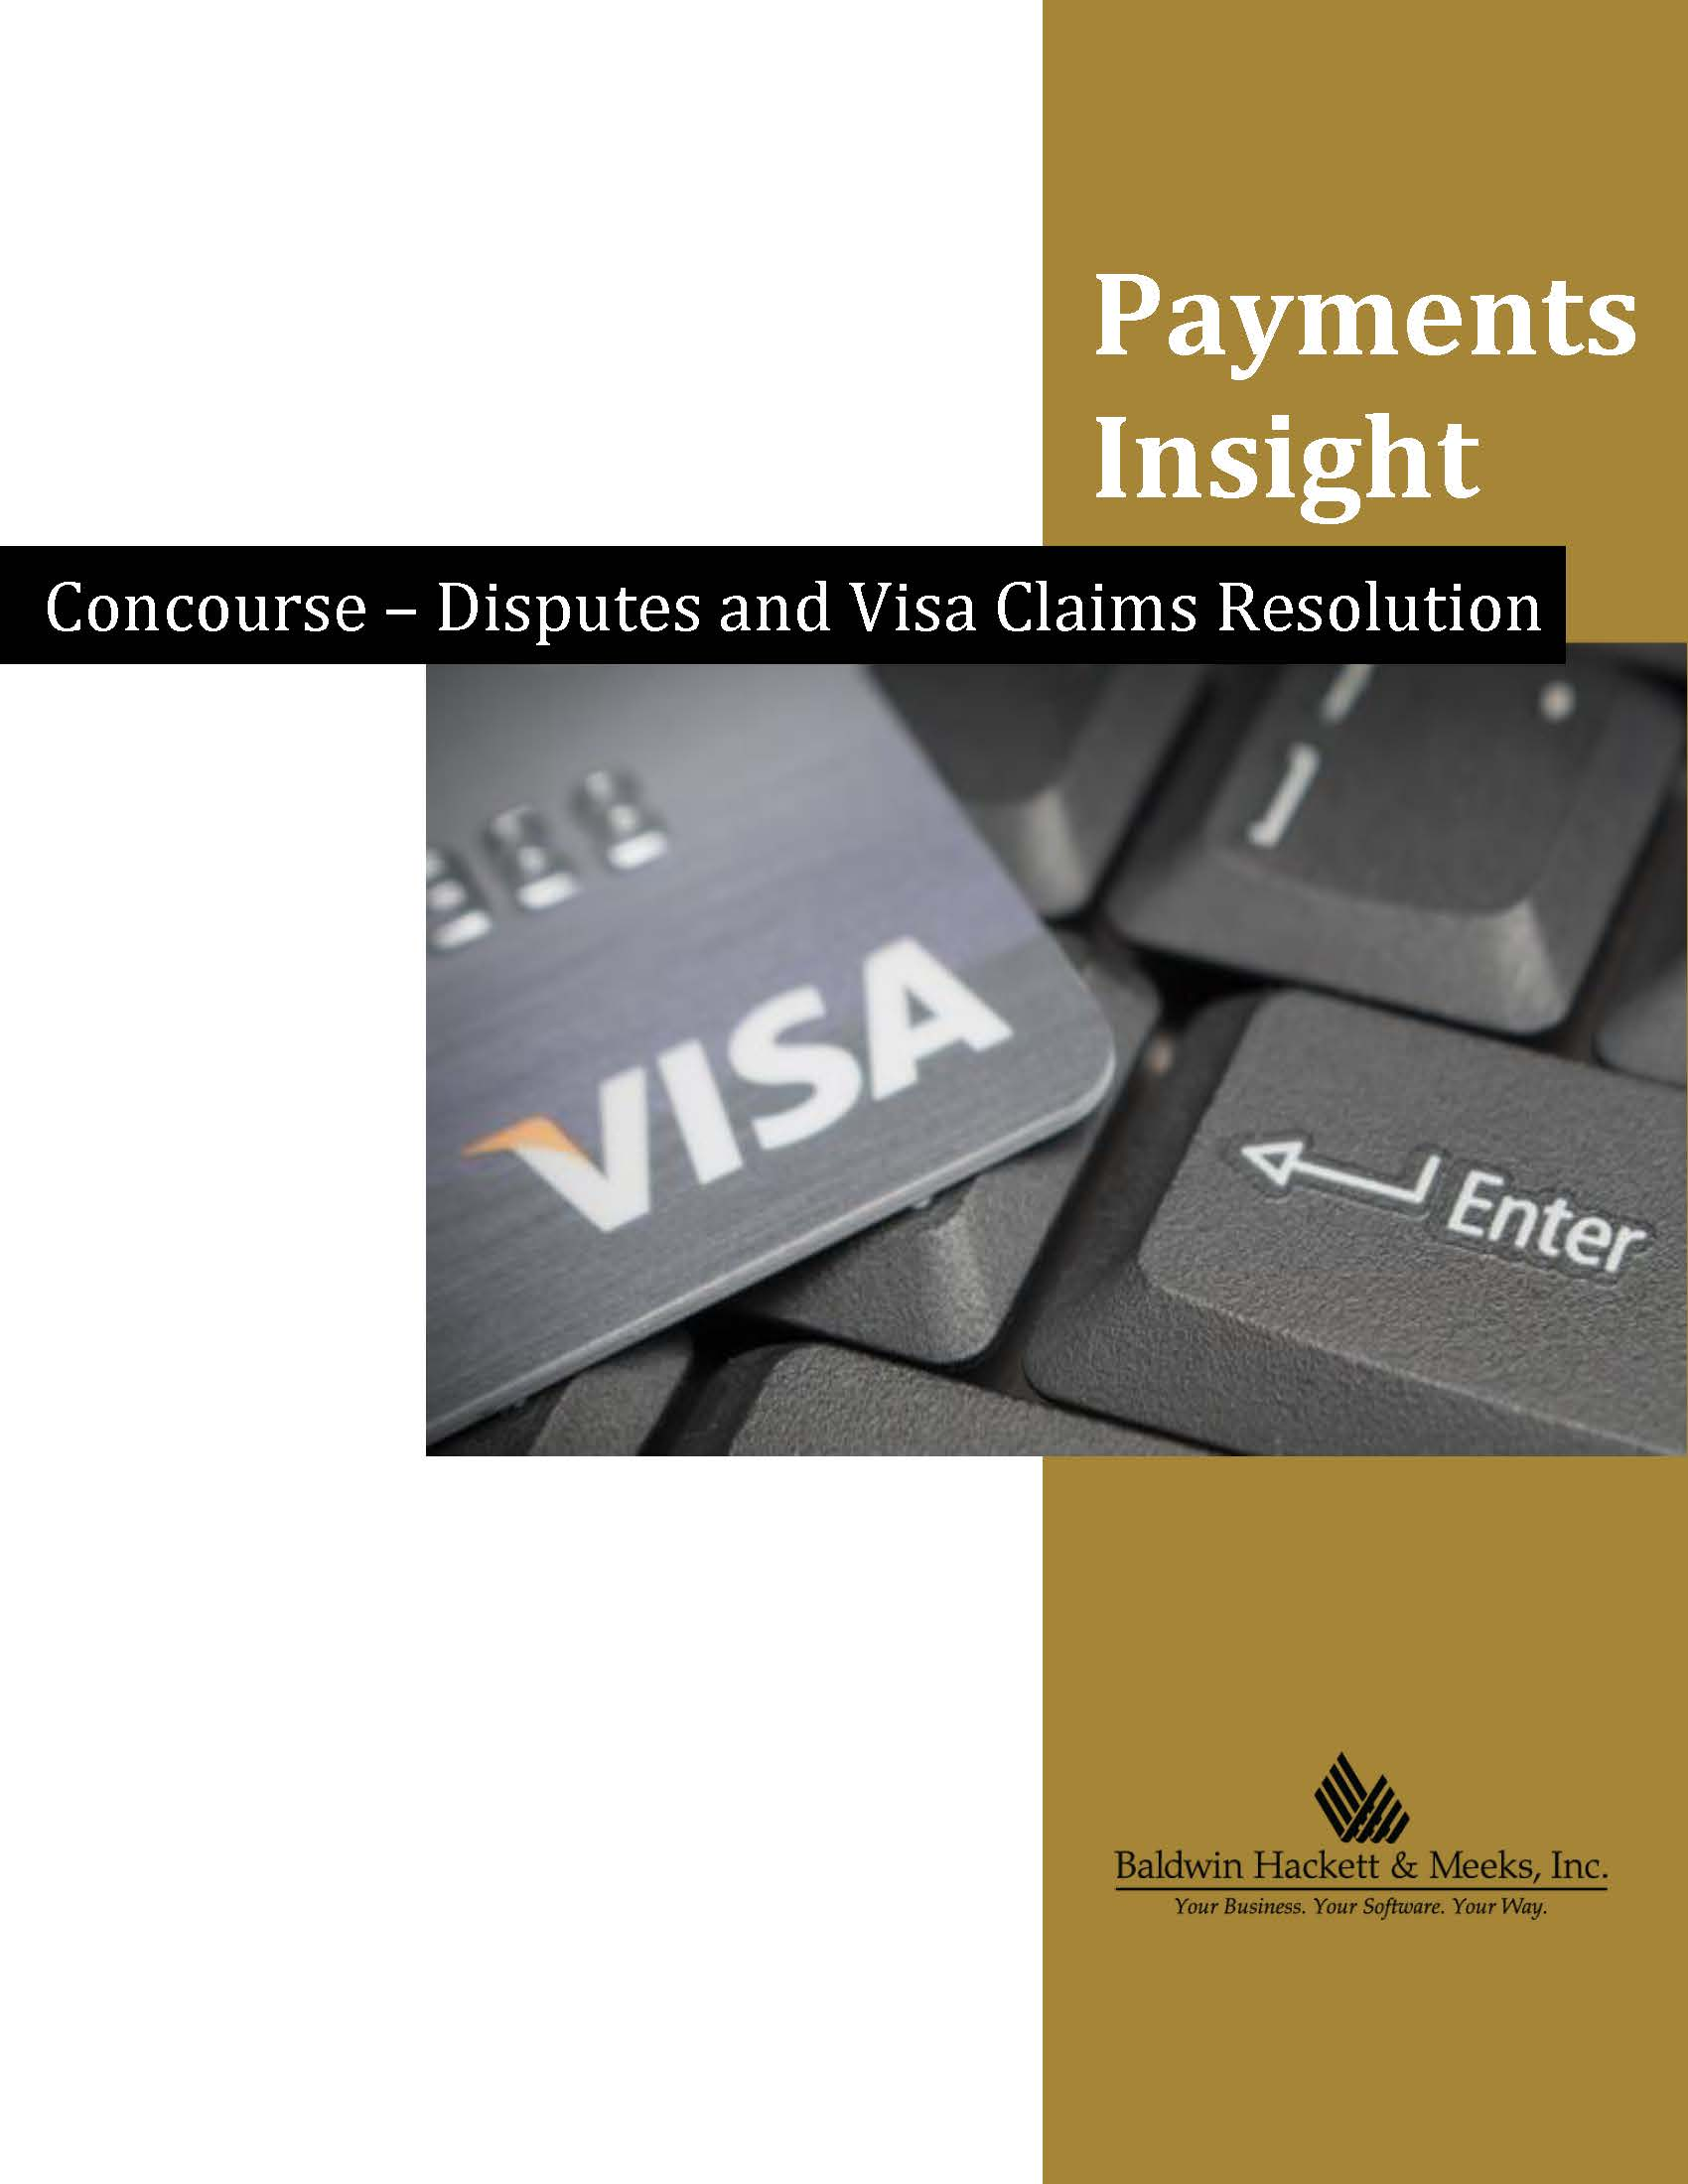 PAYMENTS INSIGHT: CONCOURSE – DISPUTES AND VISA CLAIMS RESOLUTION